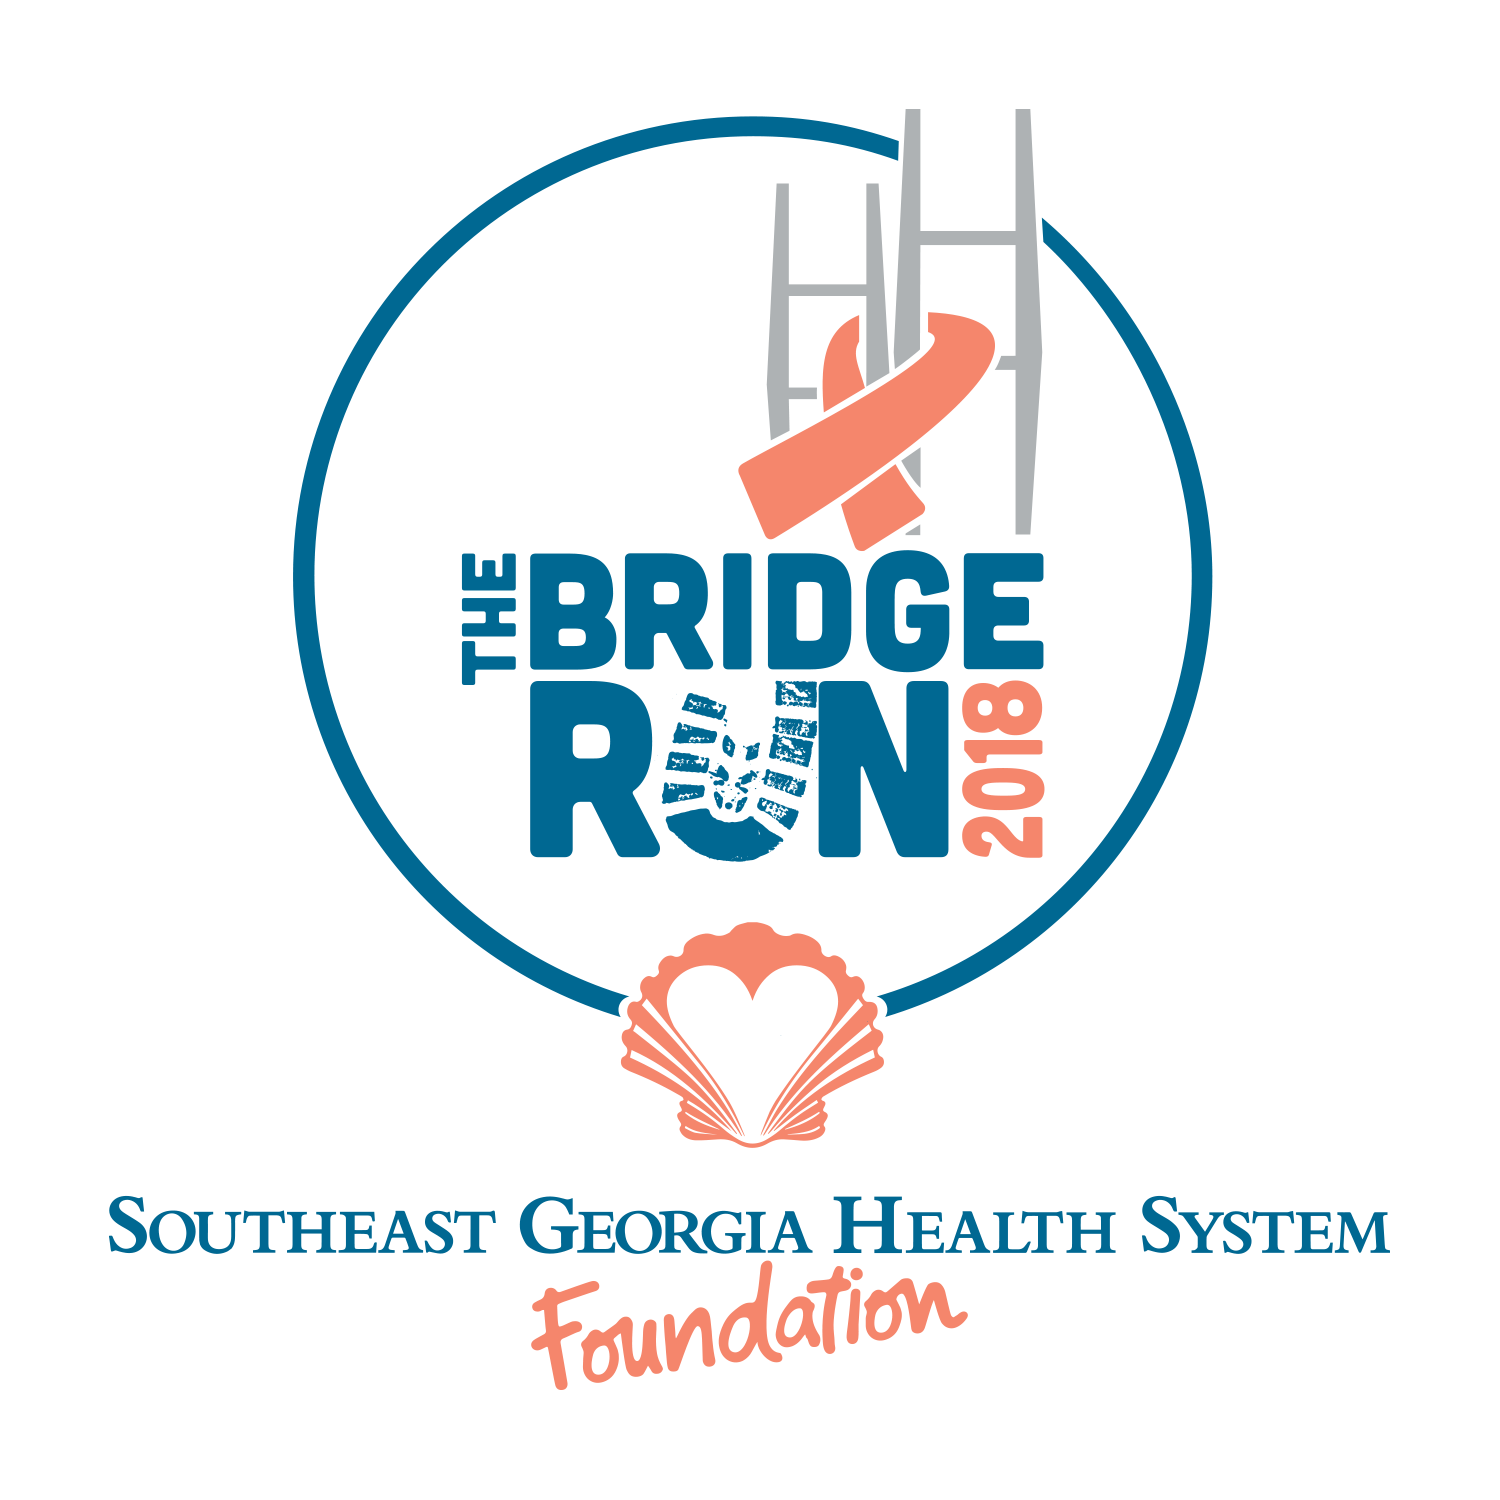 The bridge run 2018 logo